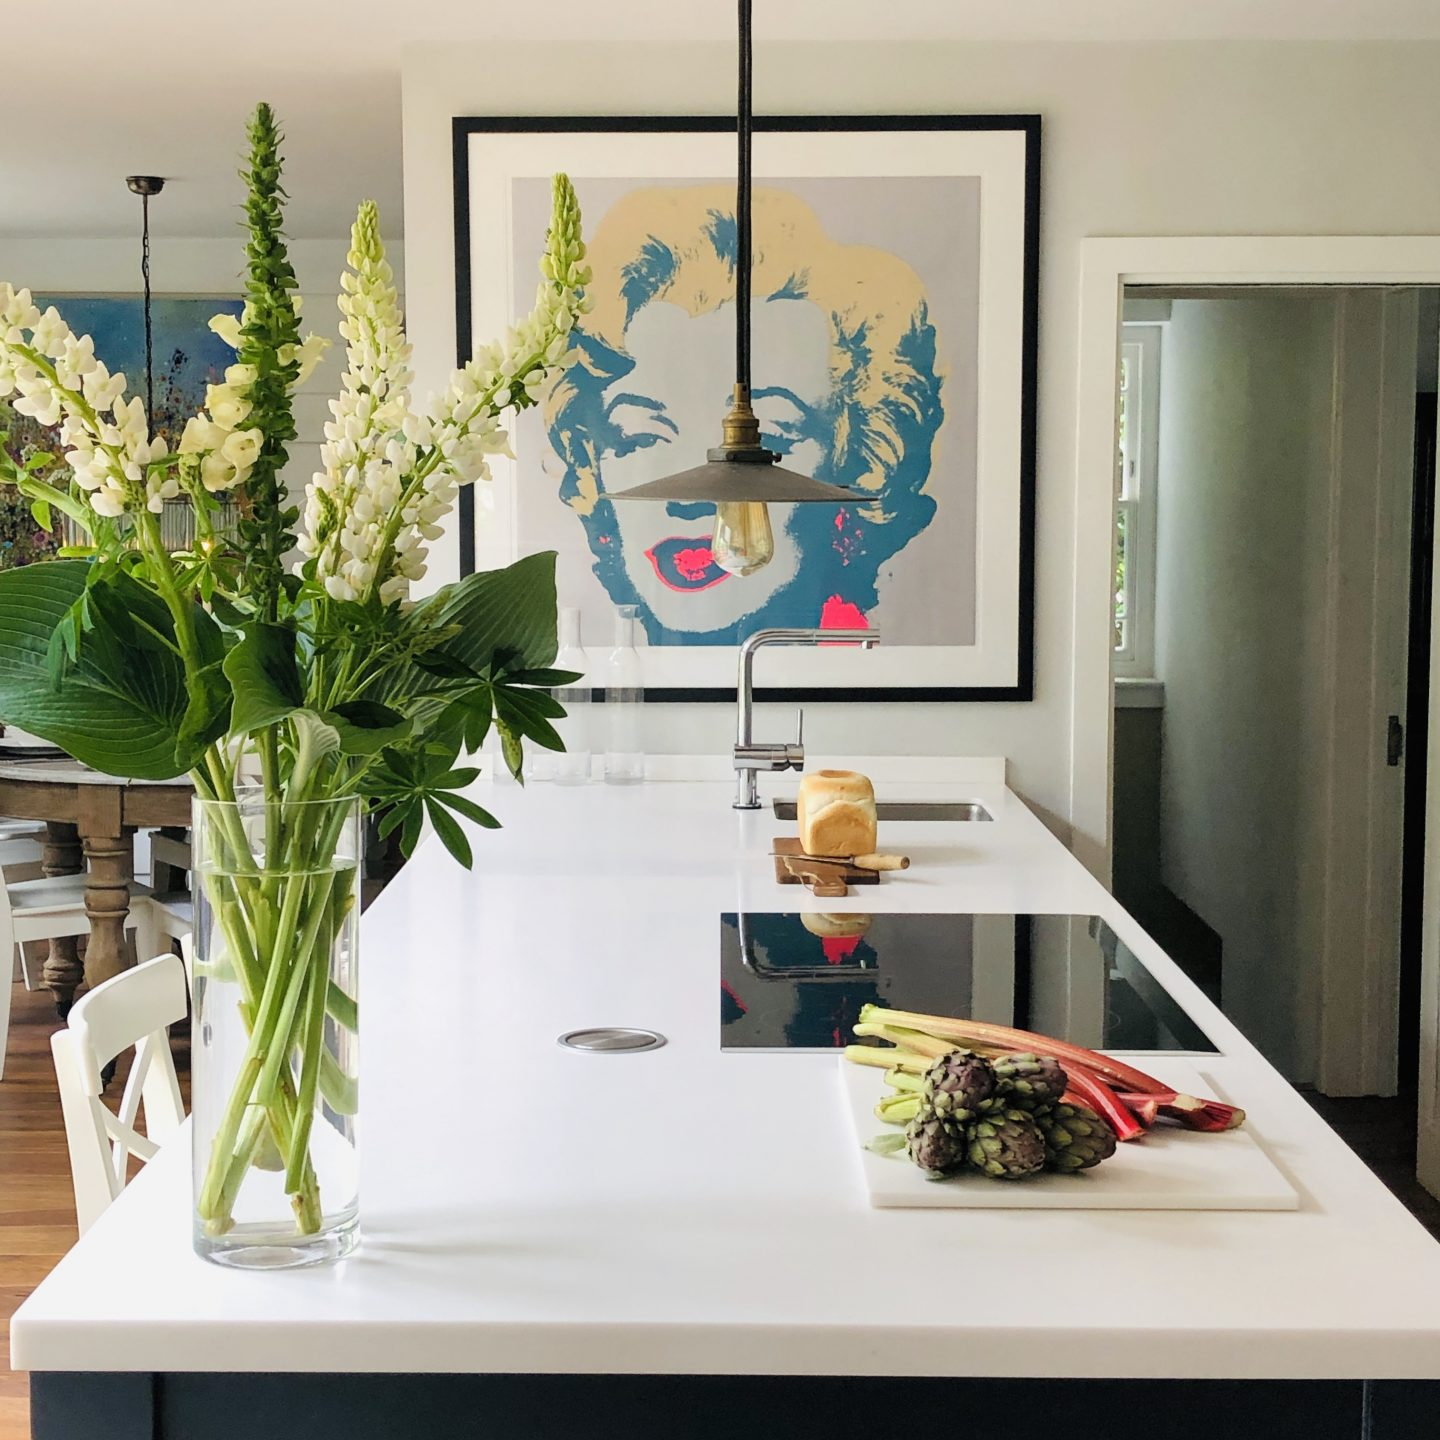 Kitchen island adorned with Lupins.